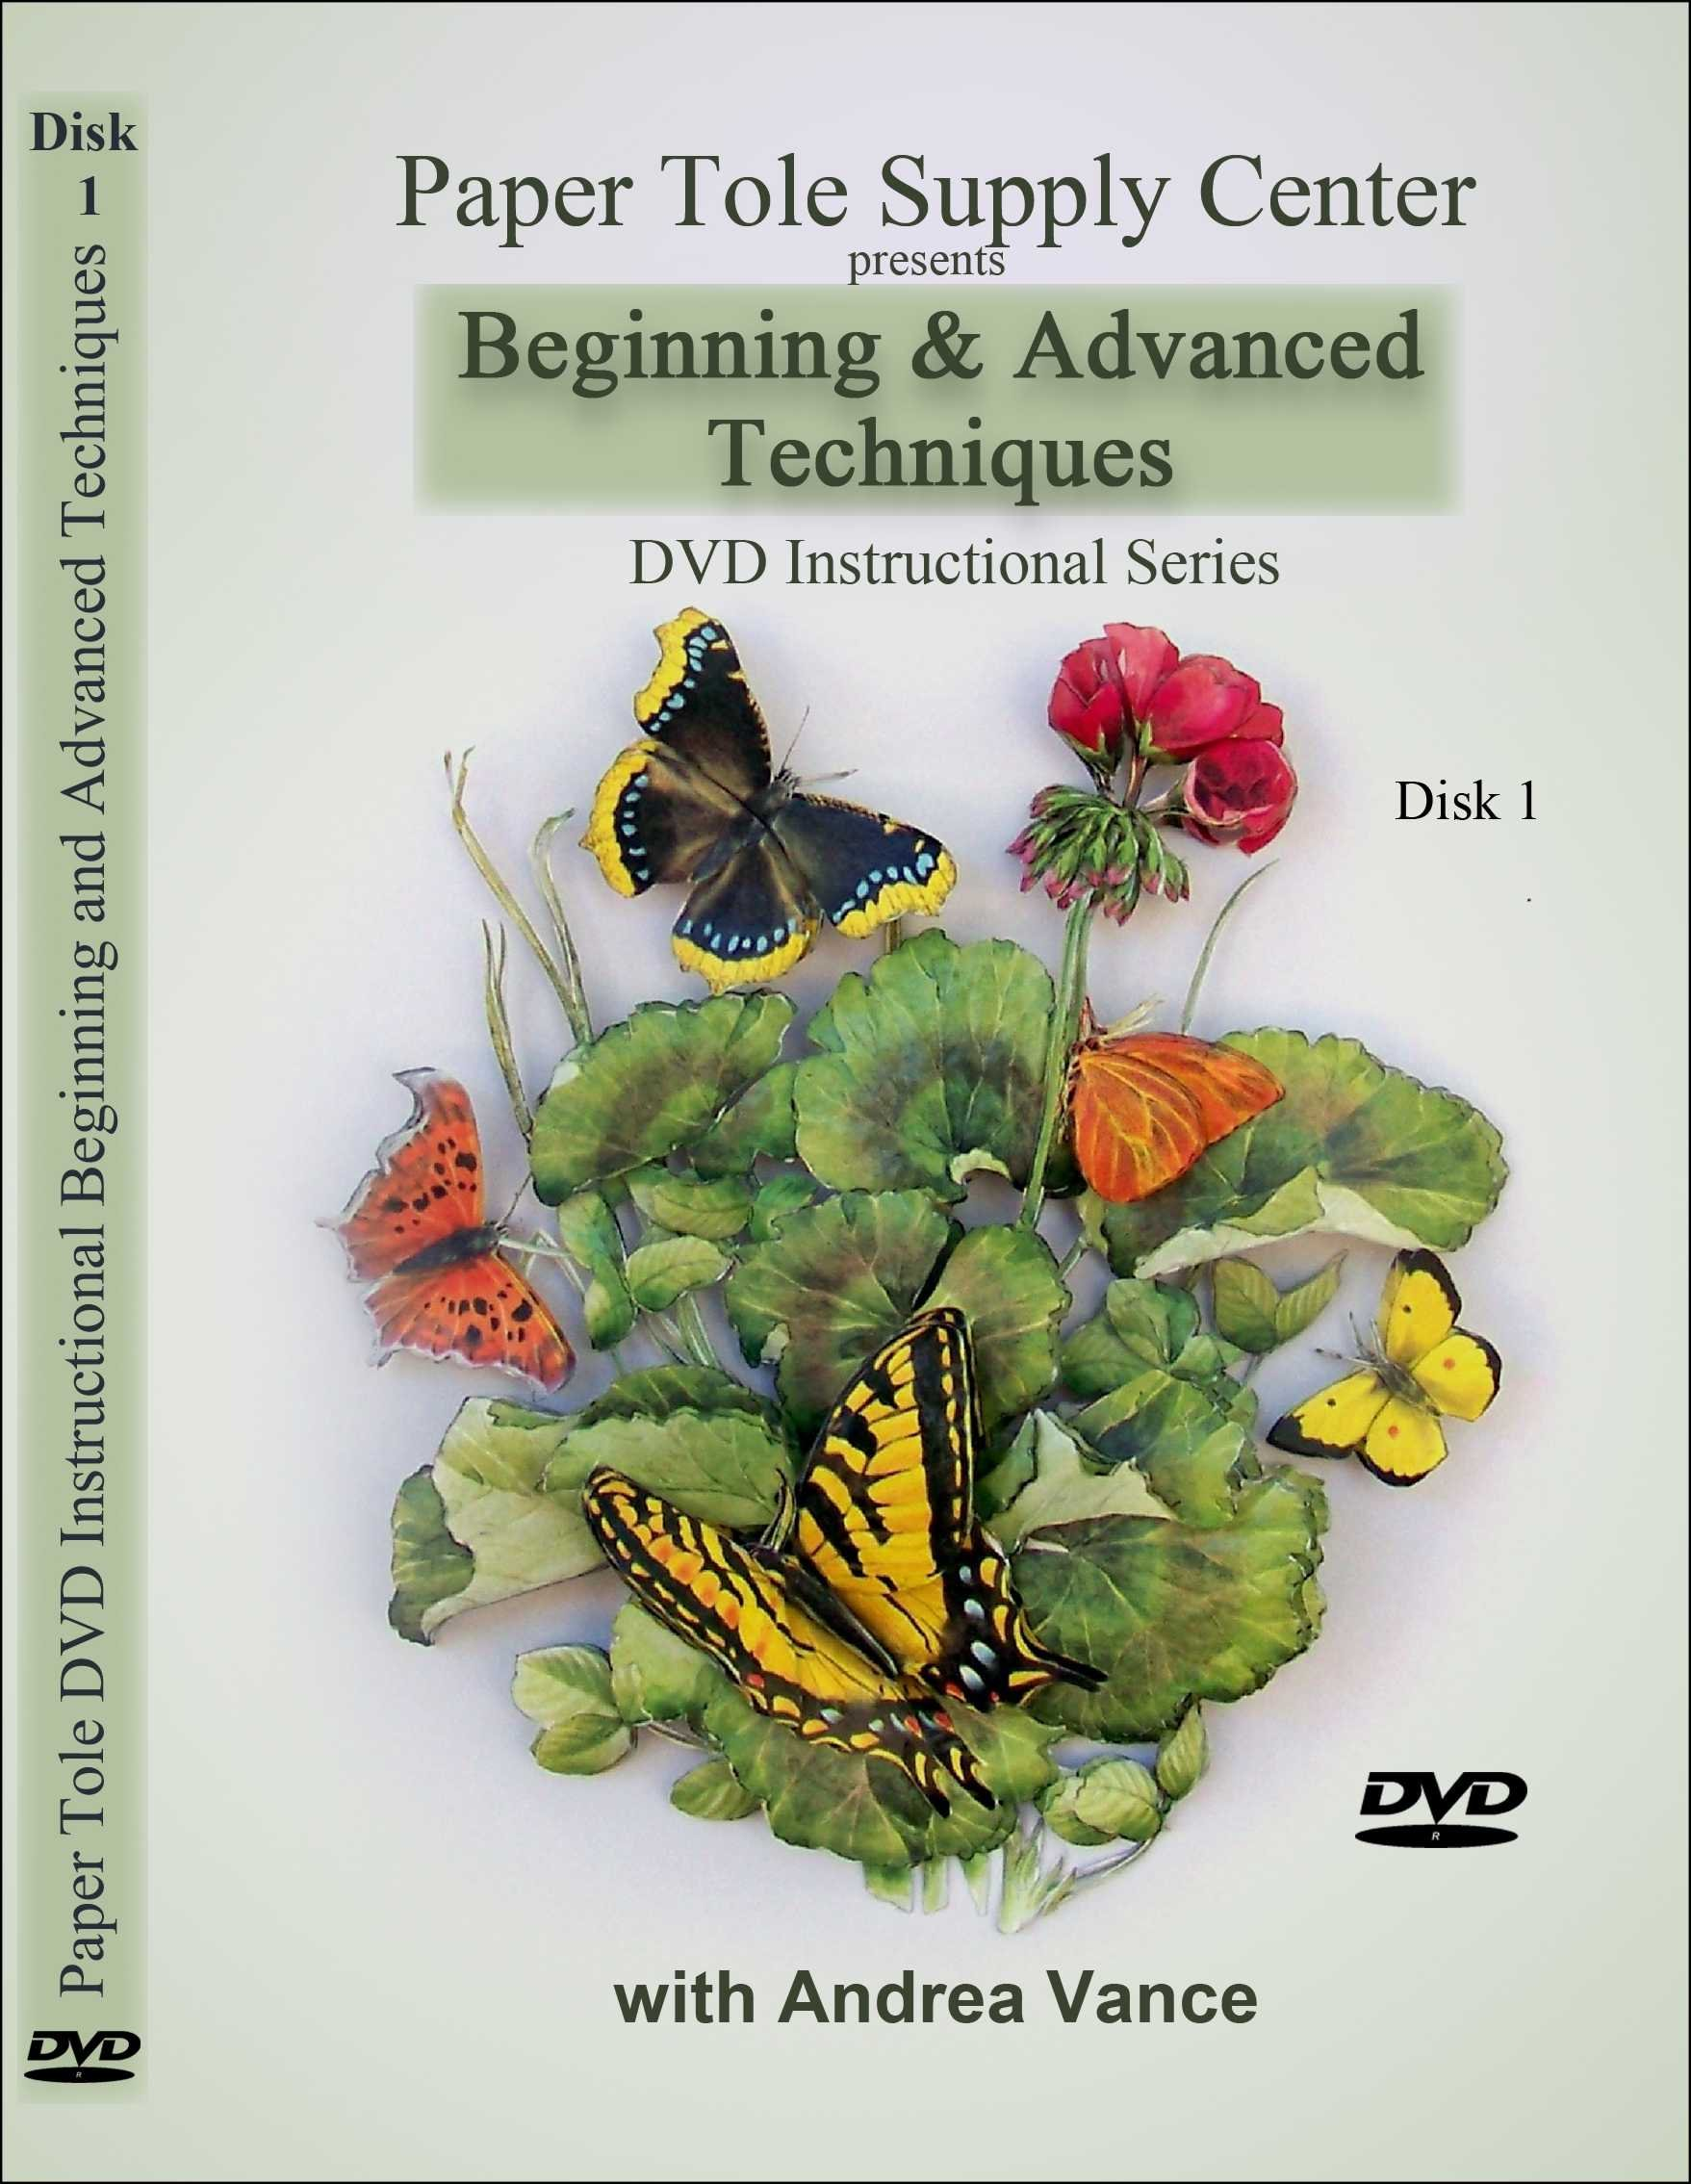 Learn Paper Tole DVD 1 Beginning & Advanced Techniques with Andrea Vance by Paper Tole Supply Center